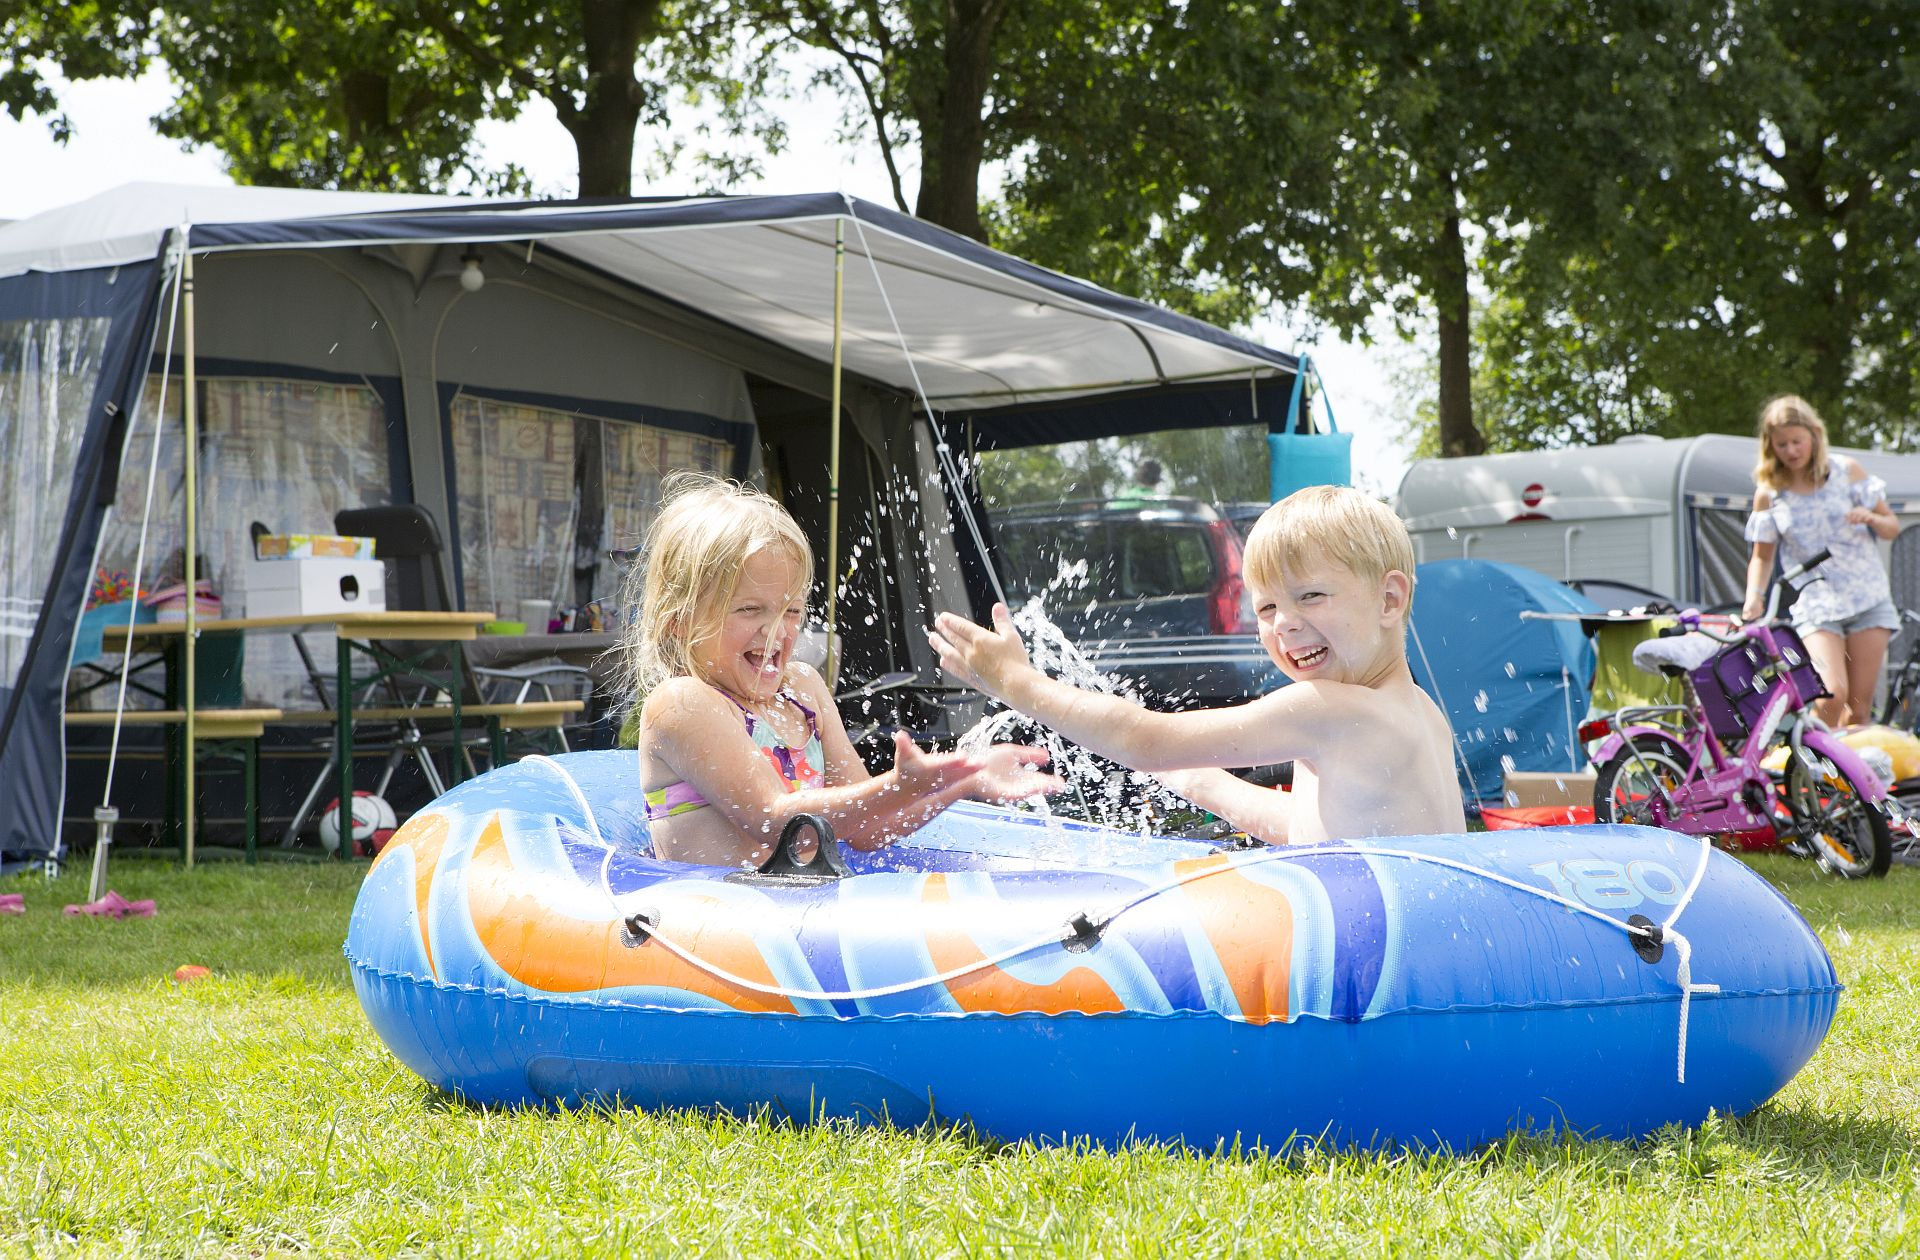 5 Sterne Familiencampingplatz in Holland